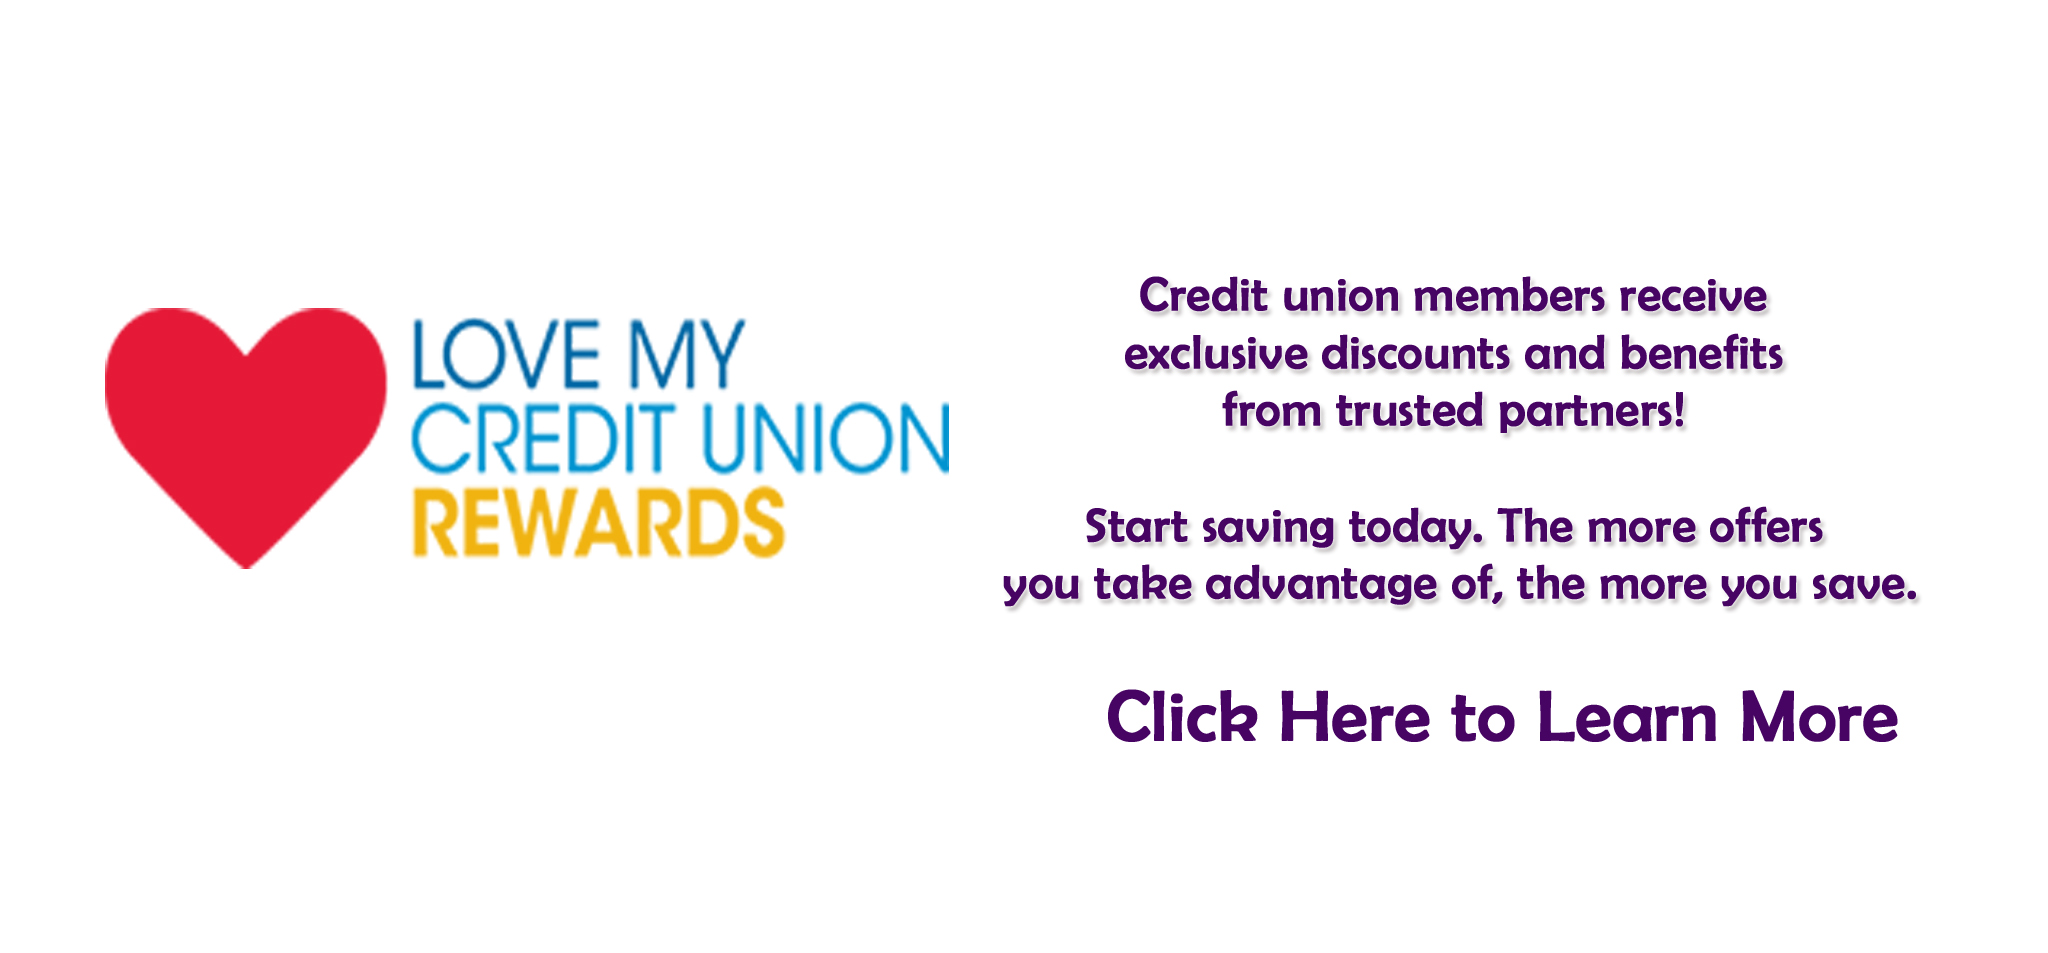 image link to the Love My Credit Union Rewards web site